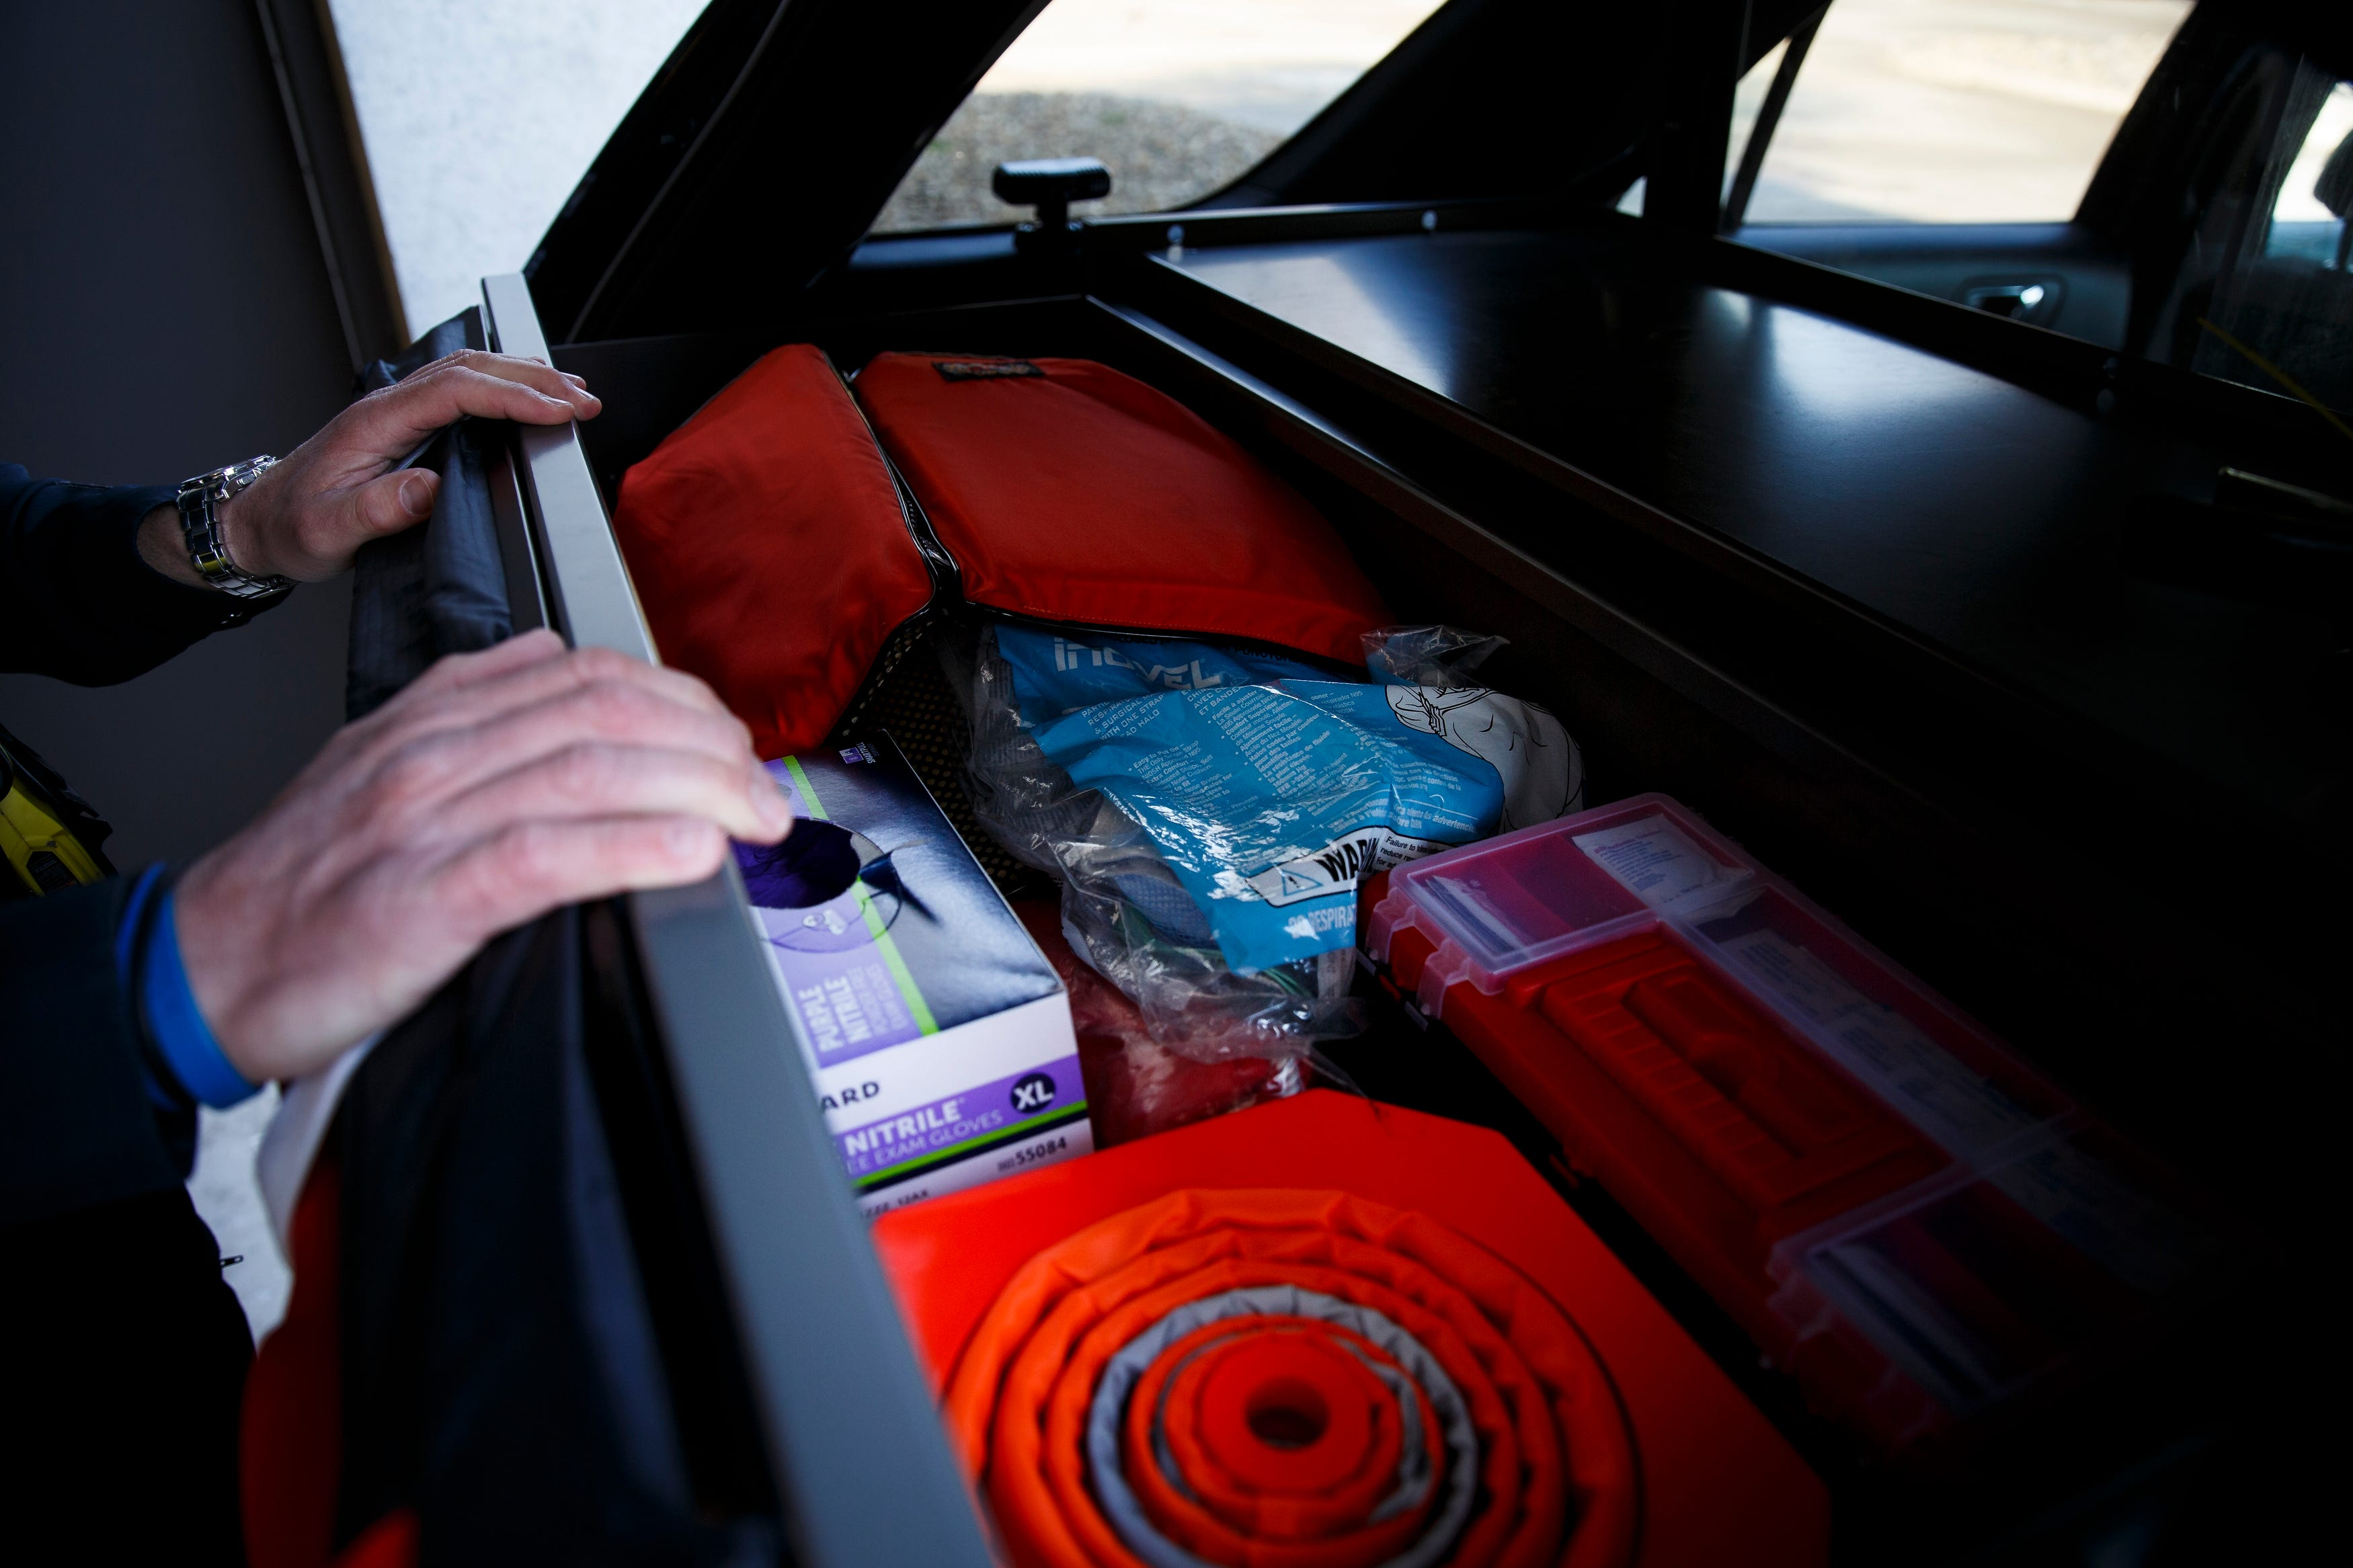 Des Moines police departments gear up for coronavirus